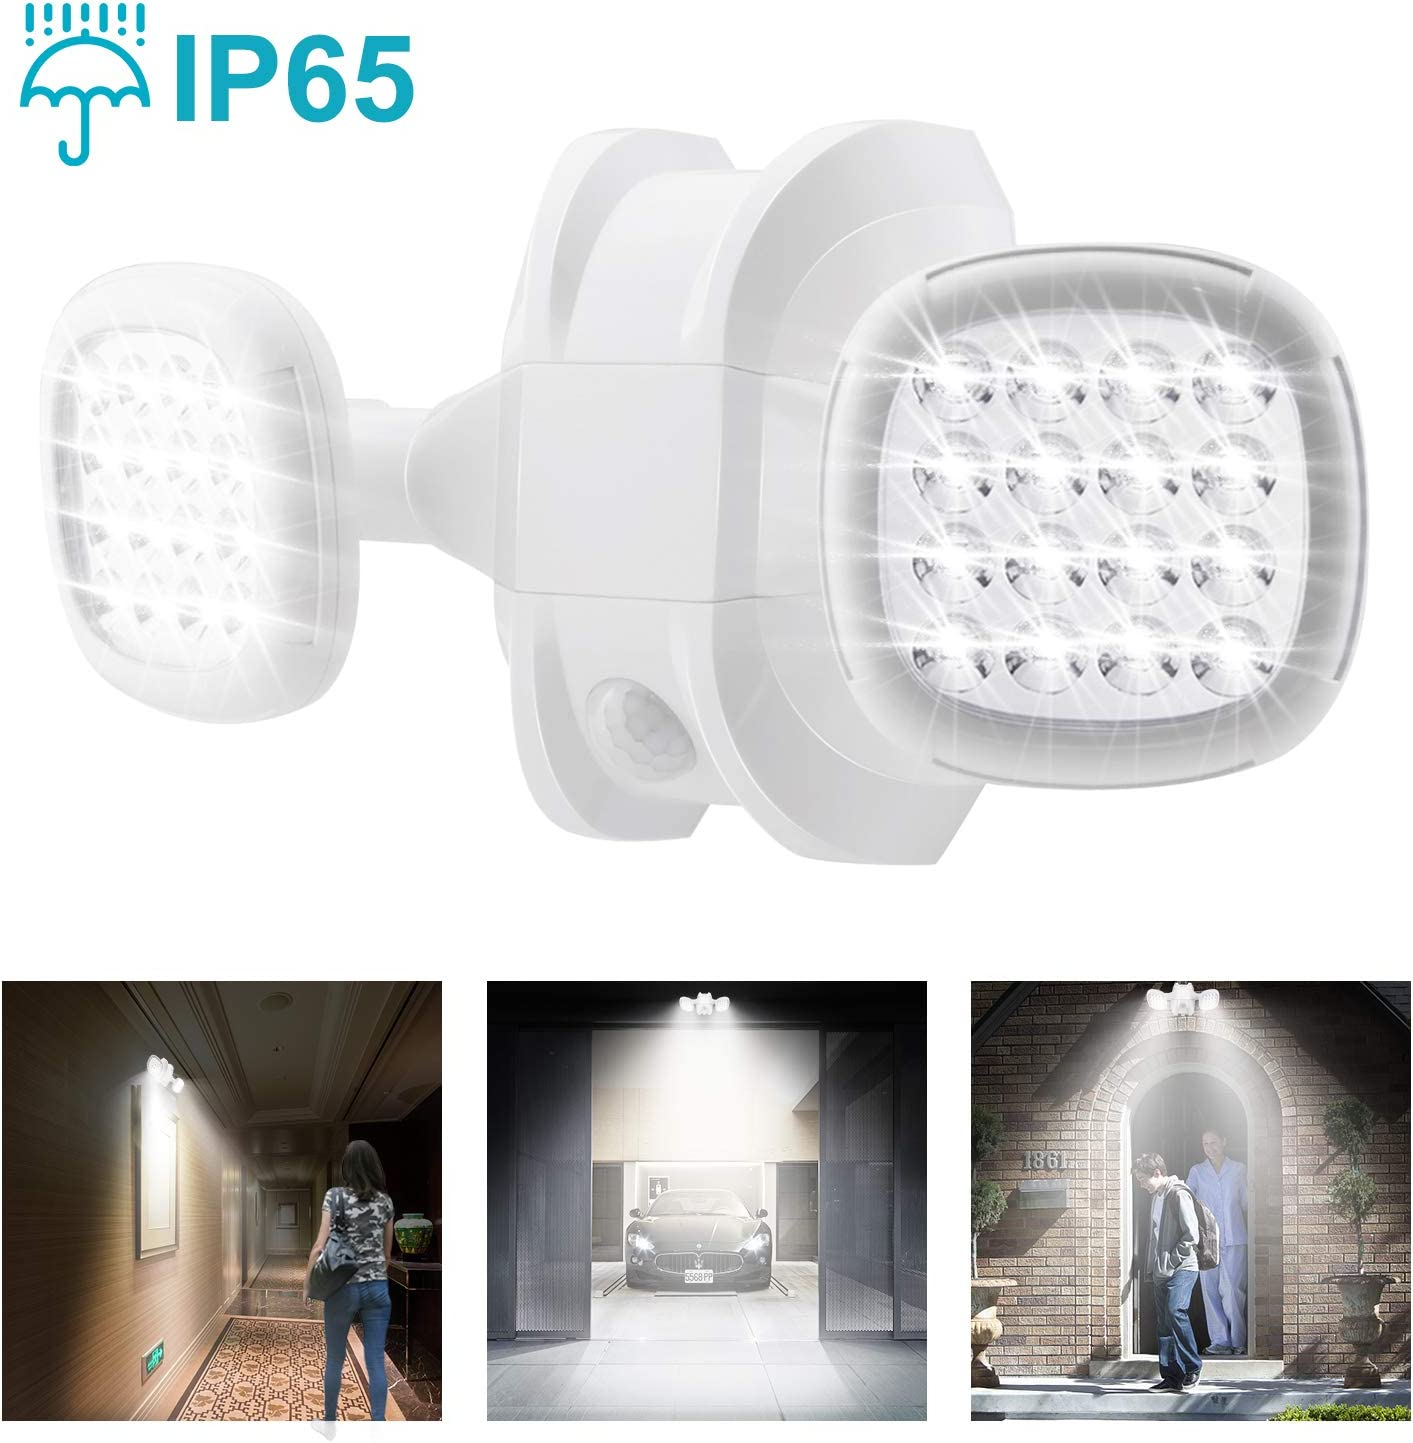 Brown BIGLIGHT Motion Sensor Light Outdoor Battery Operated 1Pack IP65 Waterproof Wireless Outdoor Security Flood Light Sensor Auto On Off for Porch 6000K White Patio,Stairs Garage